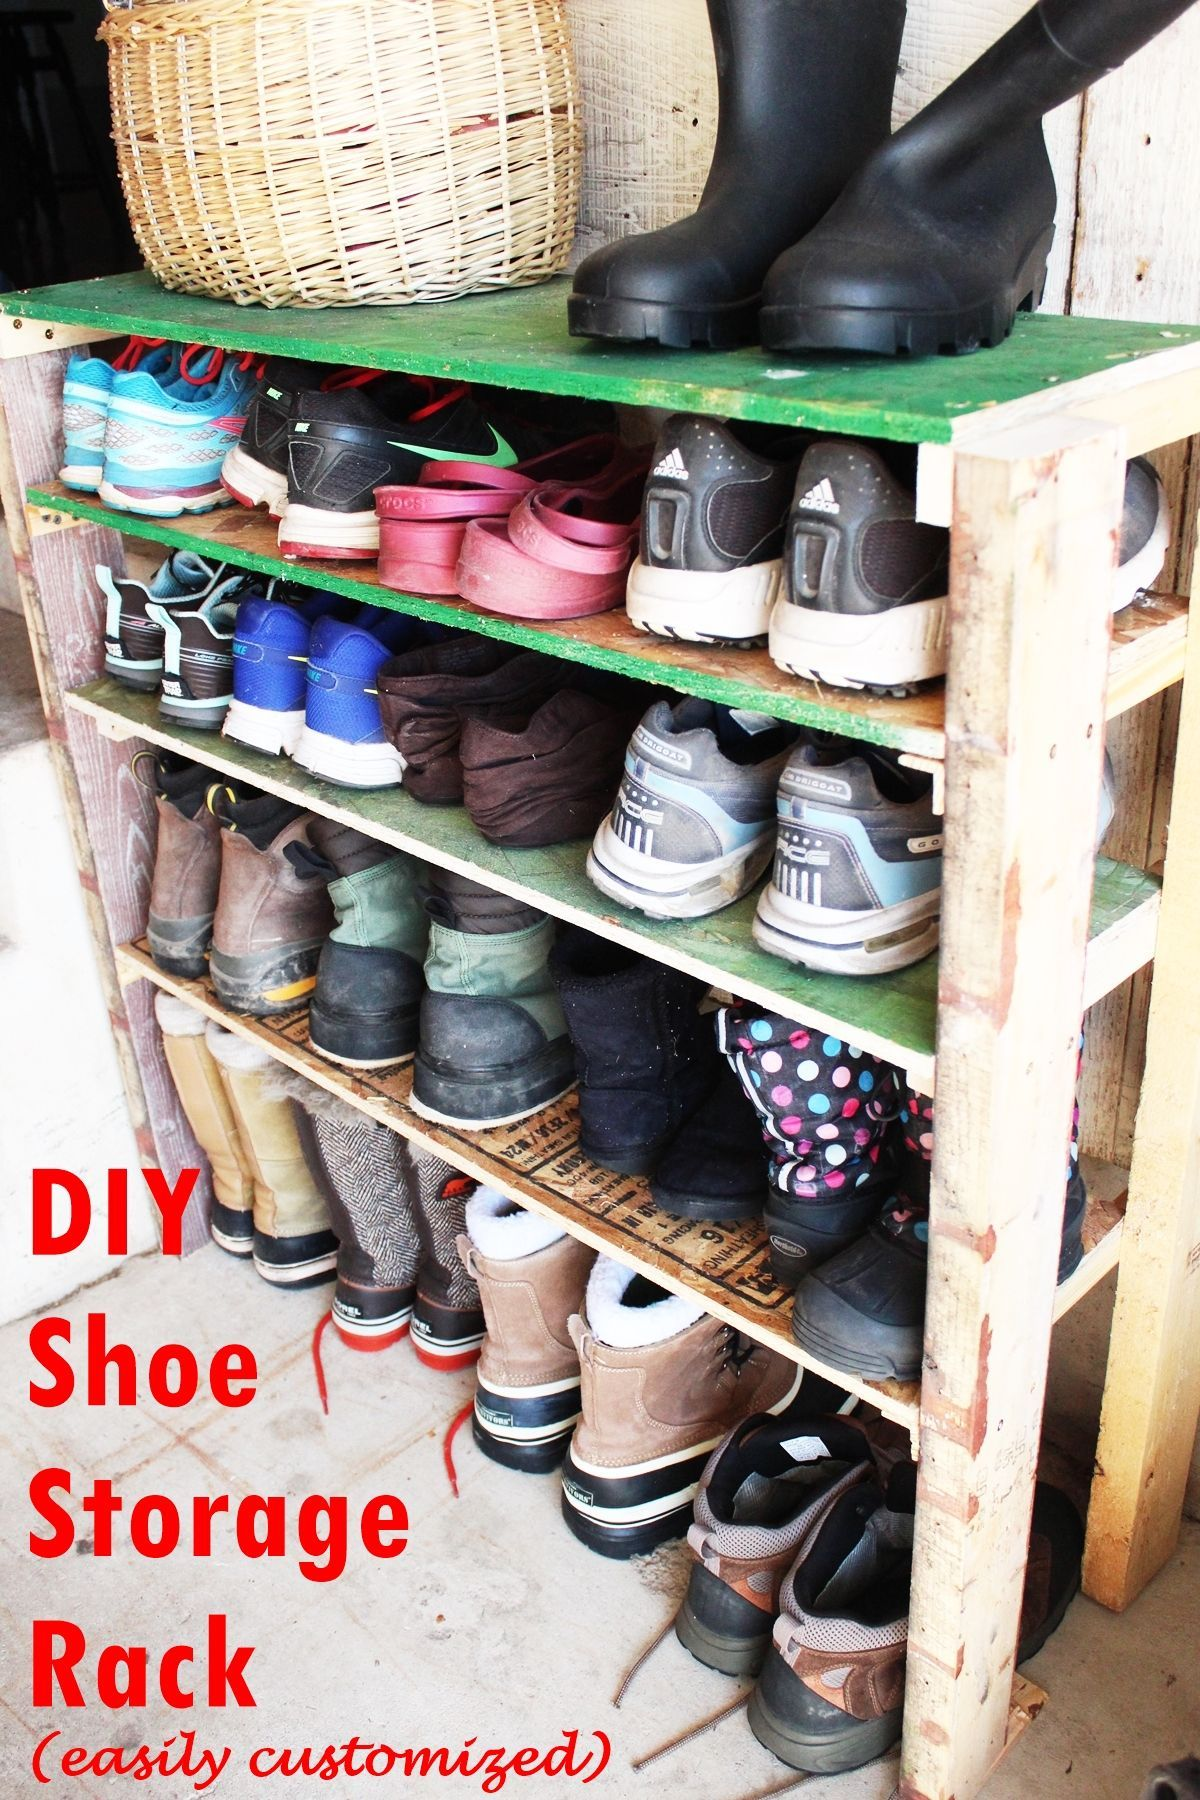 DIY Shoe Storage Shelves For Garage: An Easy, Fast, And Versatile Project